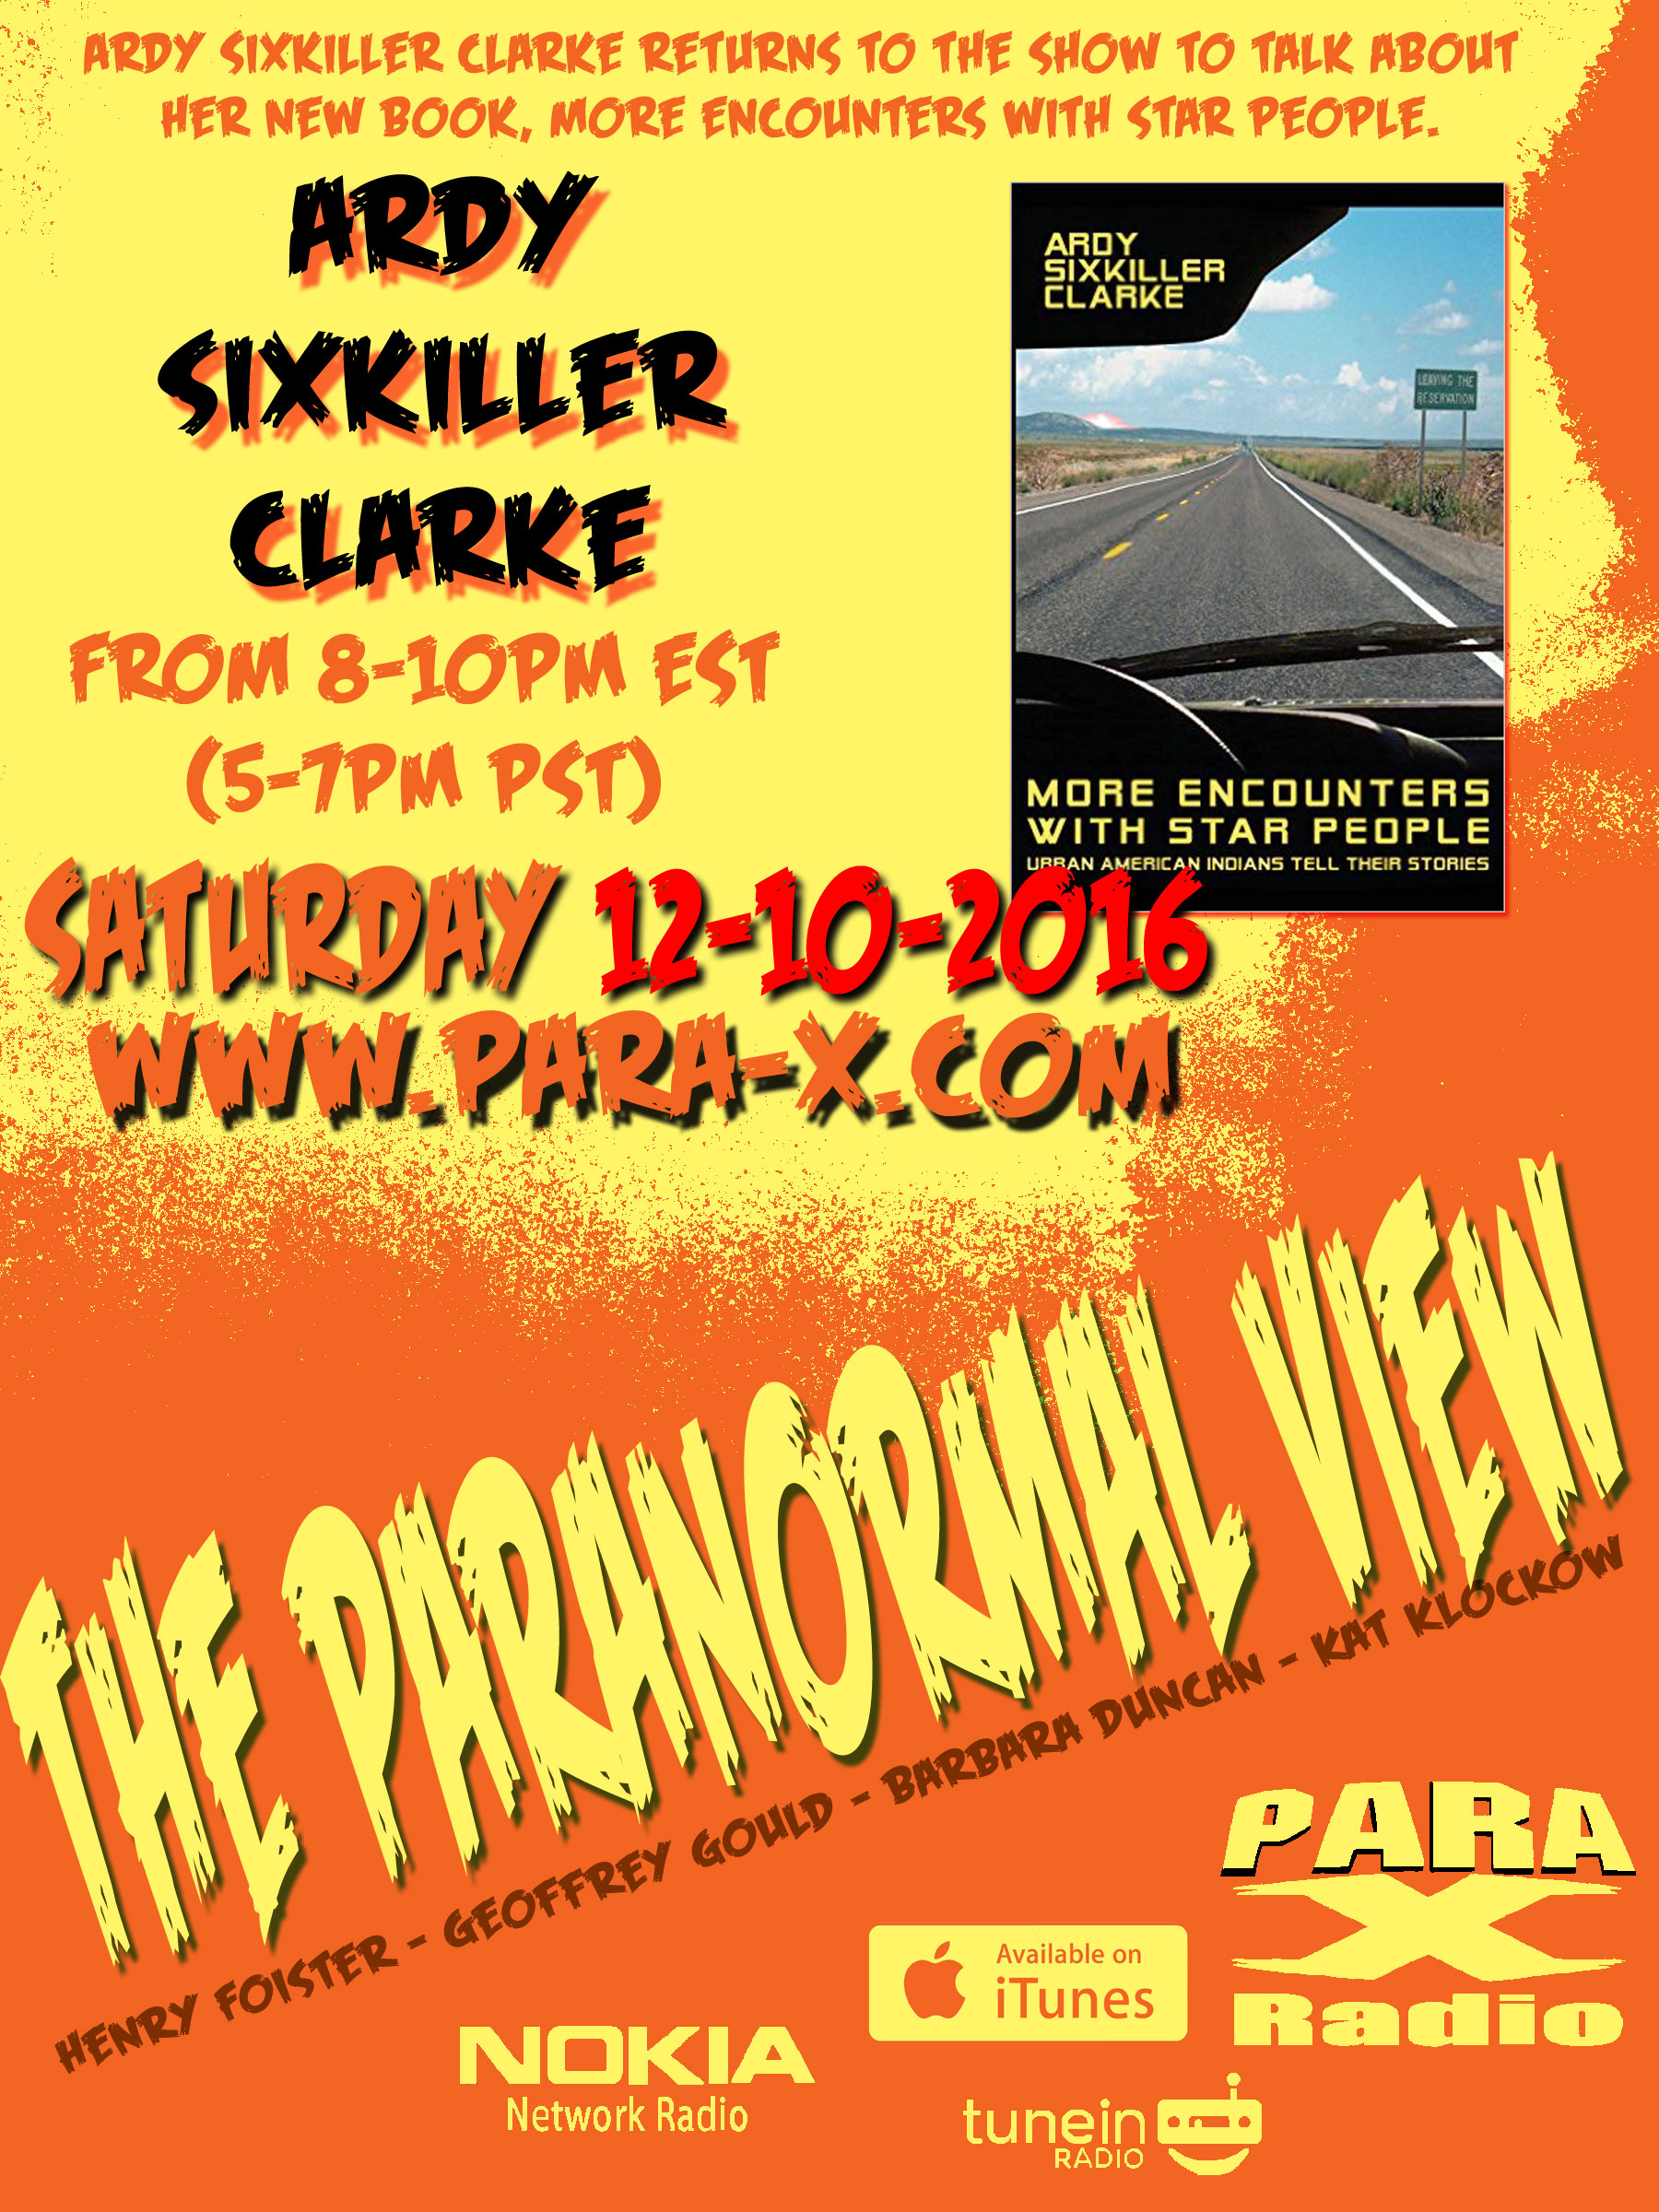 Ardy Sixkiller Clarke | The Paranormal View - Para-X Radio Network